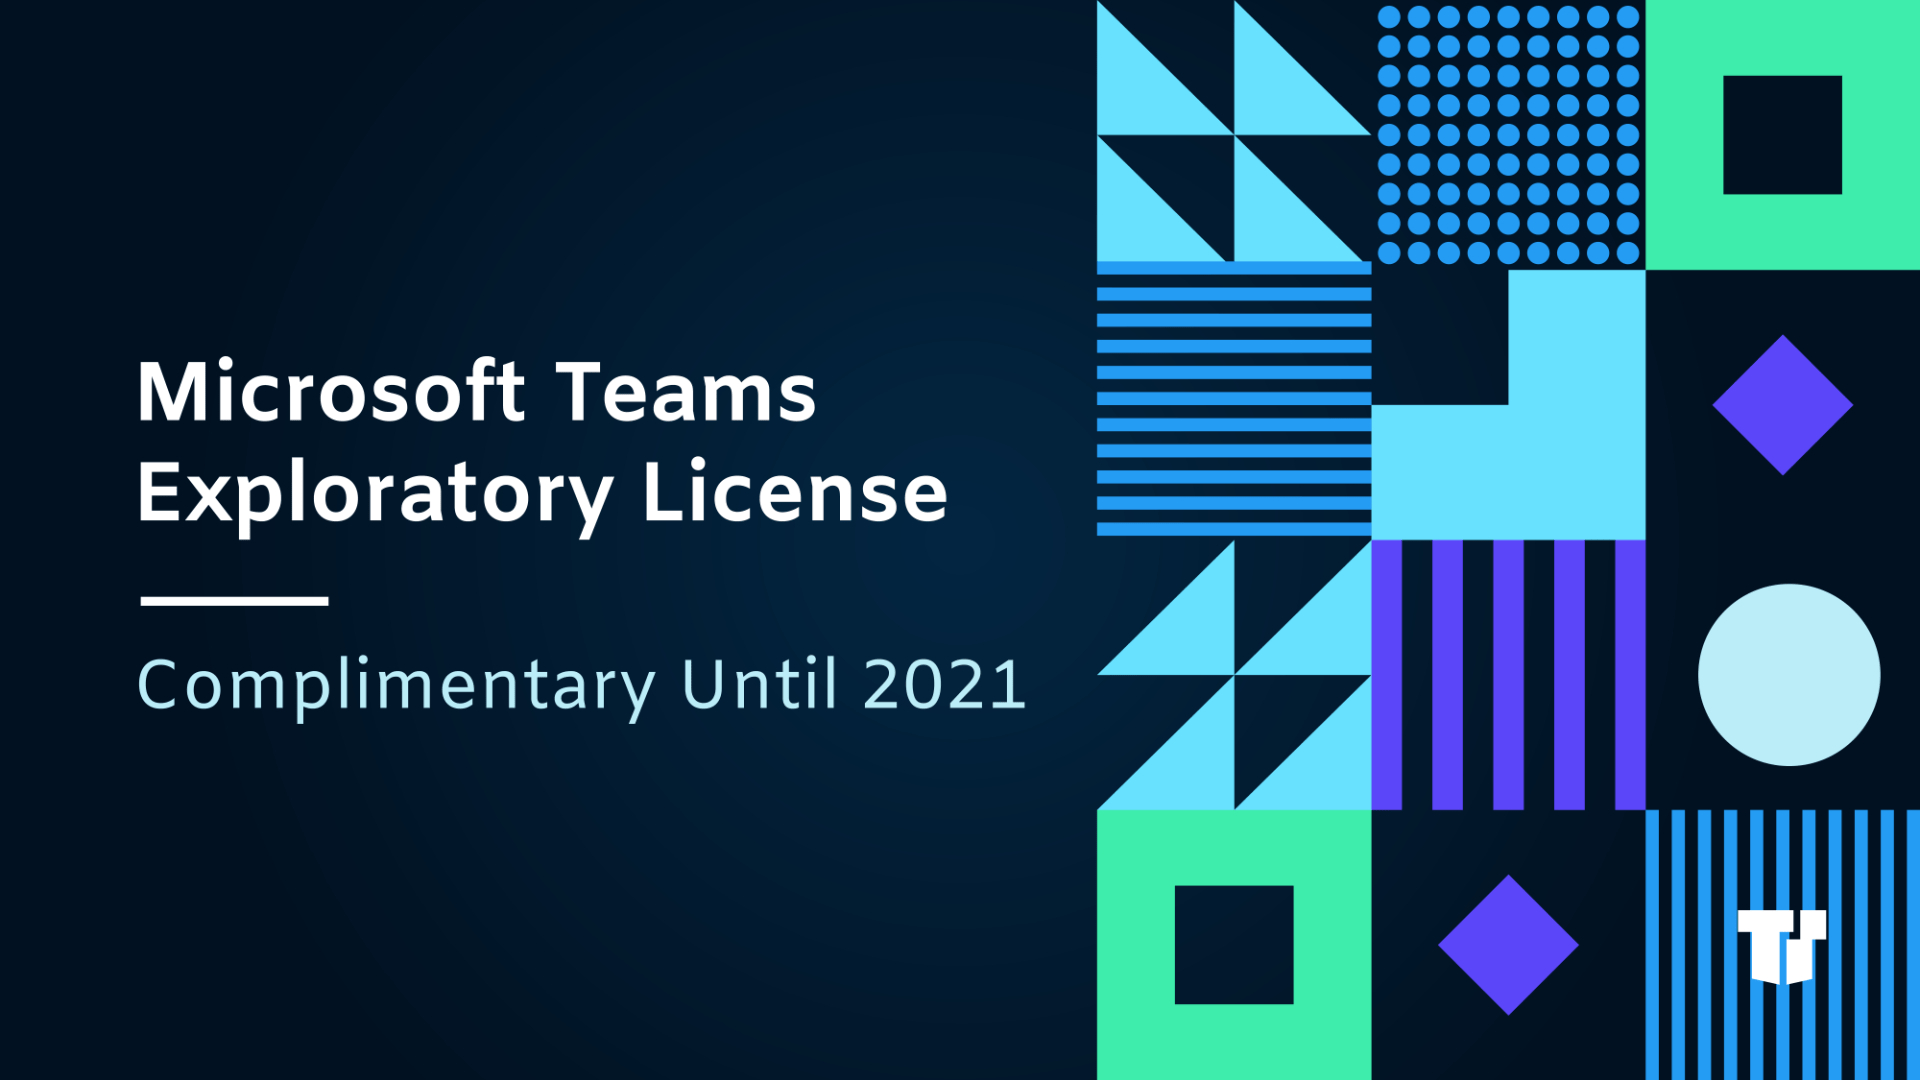 Microsoft Teams Exploratory License: Complimentary Until 2021 cover image